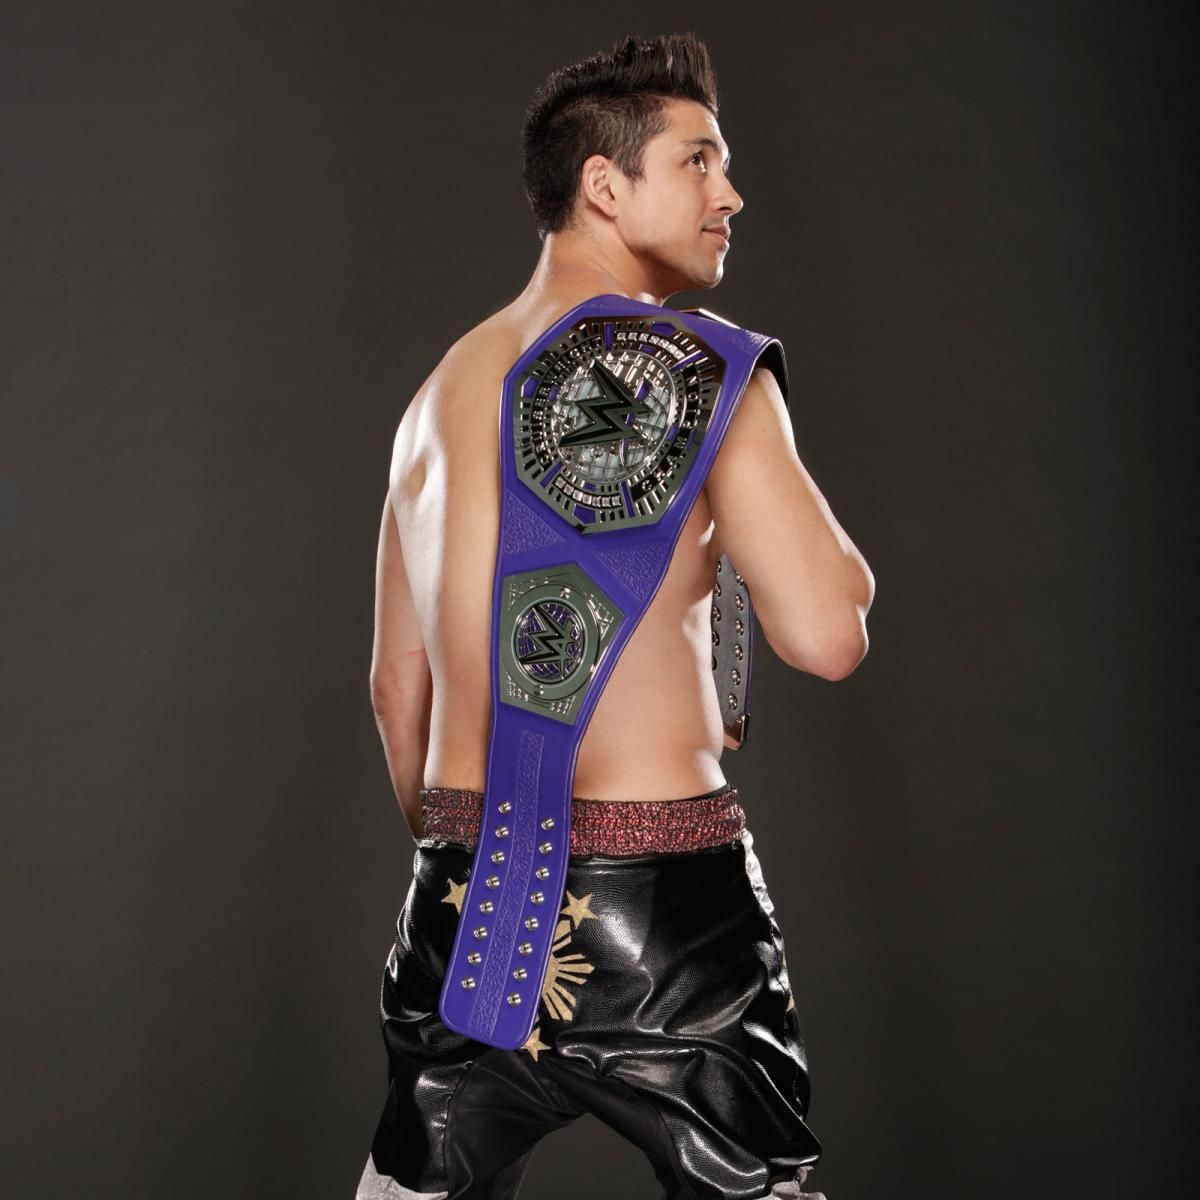 TJ Perkins Claims He Was Taken Advantage Of By Female